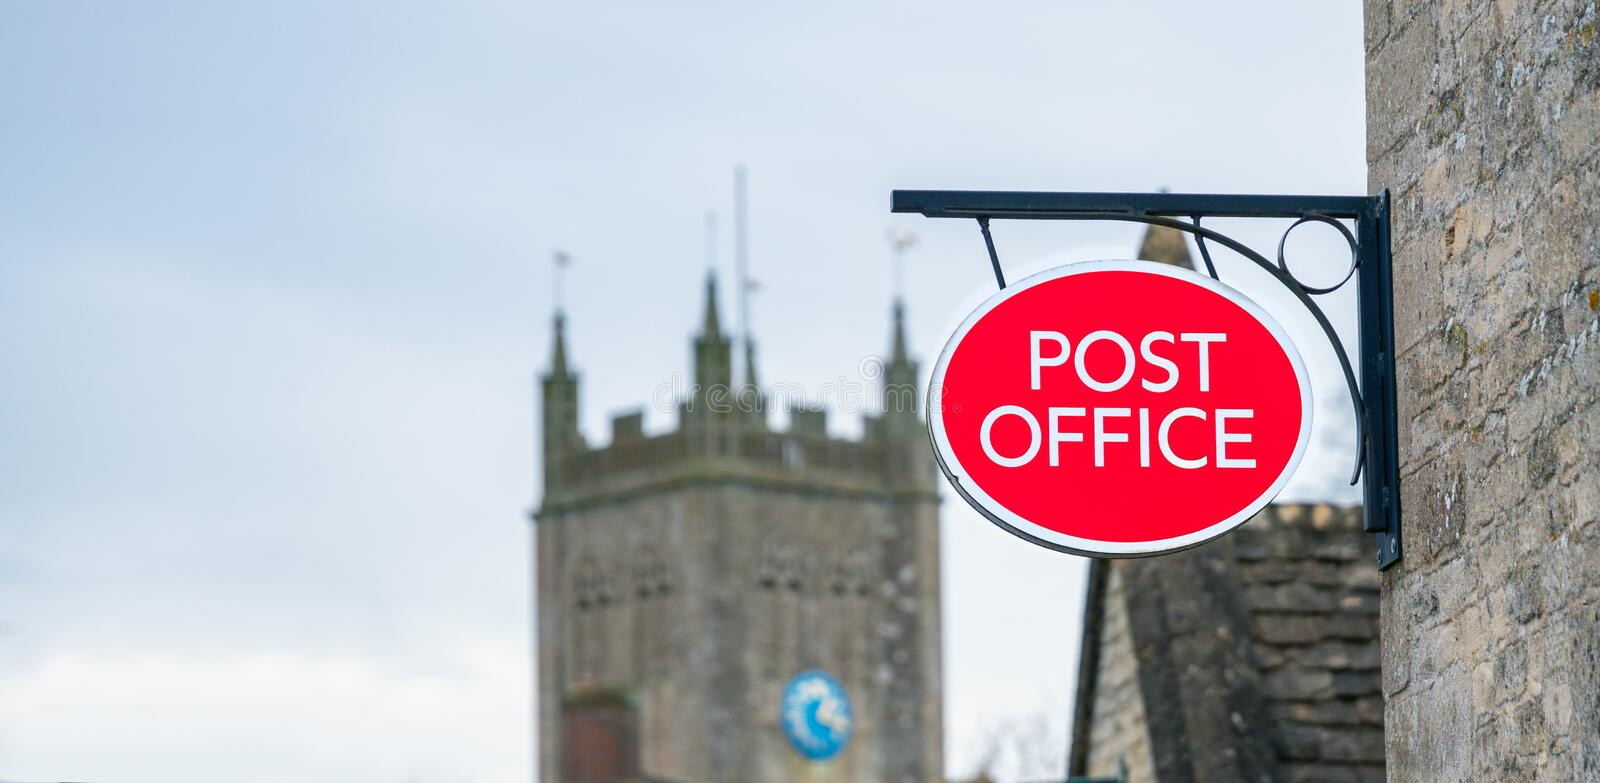 Post Office sign in rural location. England, United kingdom royalty free stock photo